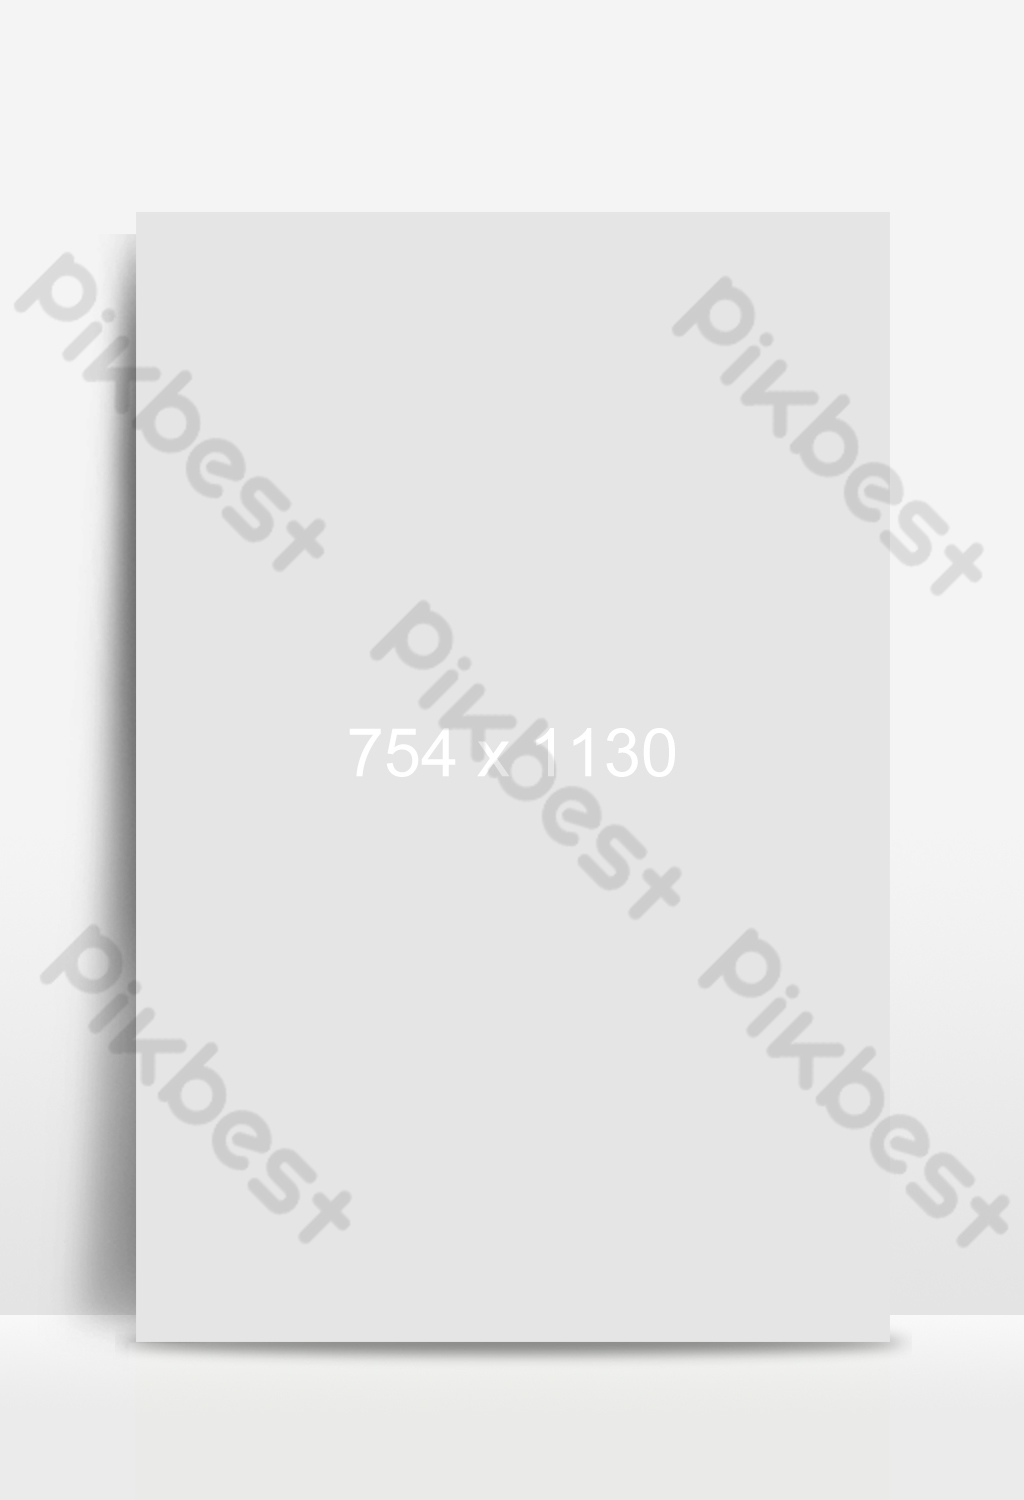 Cartoon Beautiful Swimming Pool Background Backgrounds Psd Free Download Pikbest